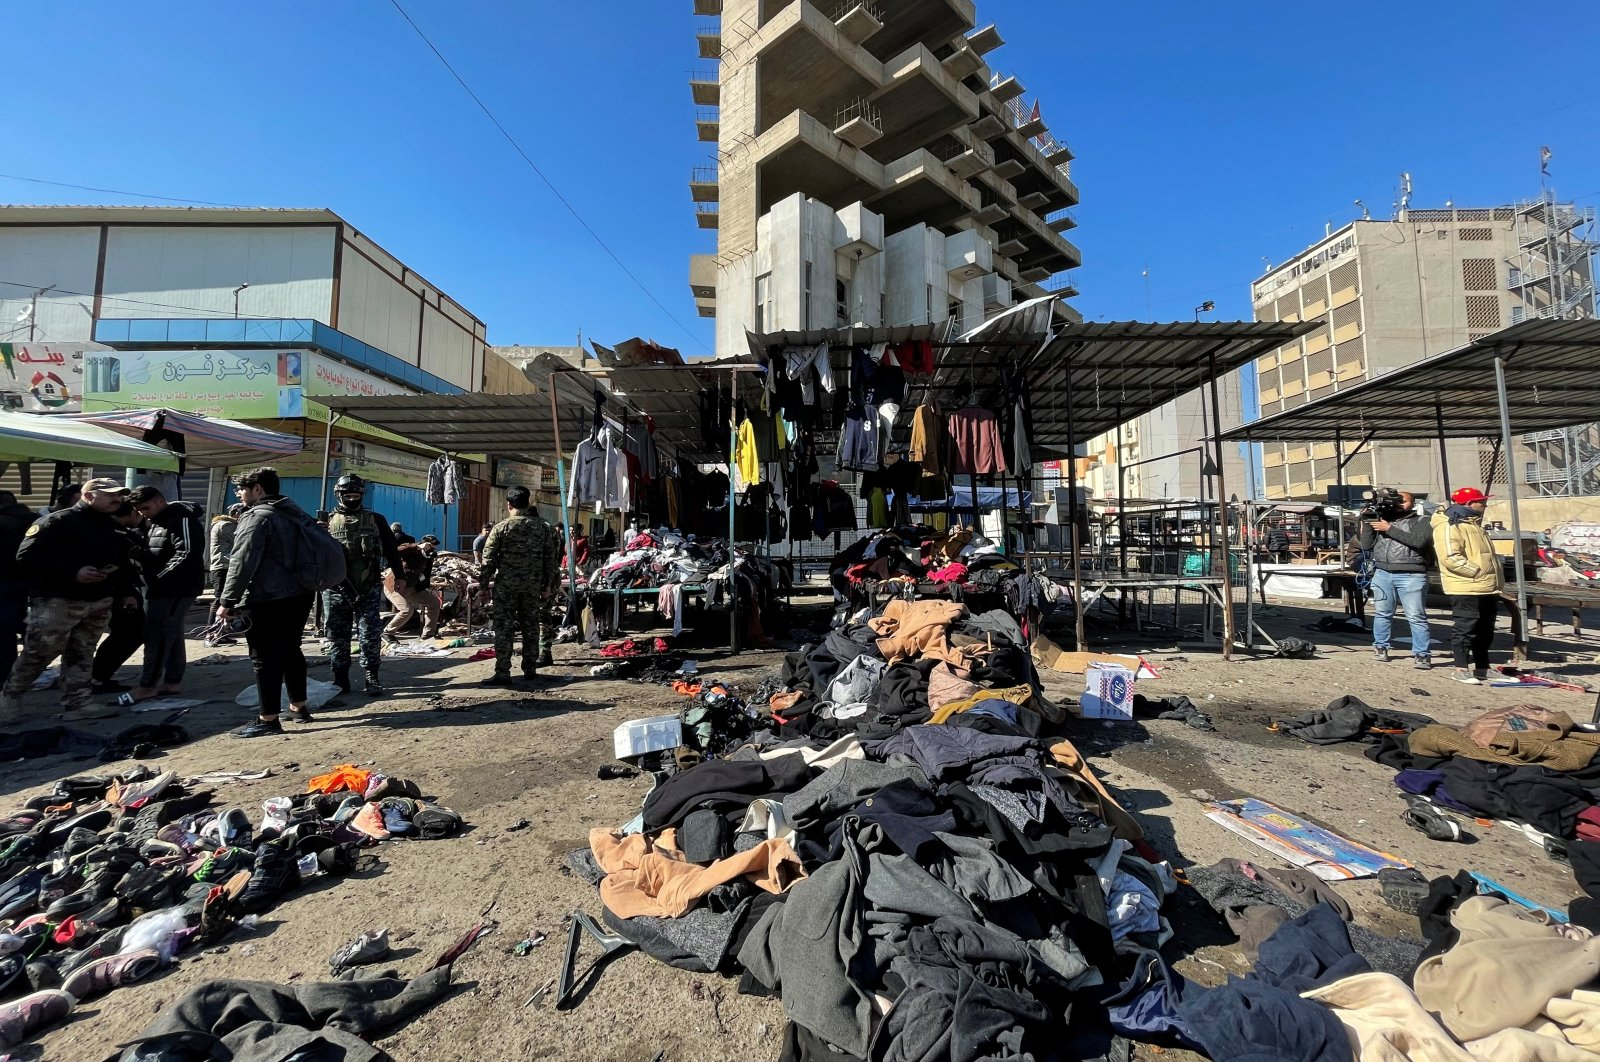 The site of a suicide attack at a central market near Tayaran Square in the capital Baghdad, Iraq, Jan. 21, 2021. (Reuters Photo)